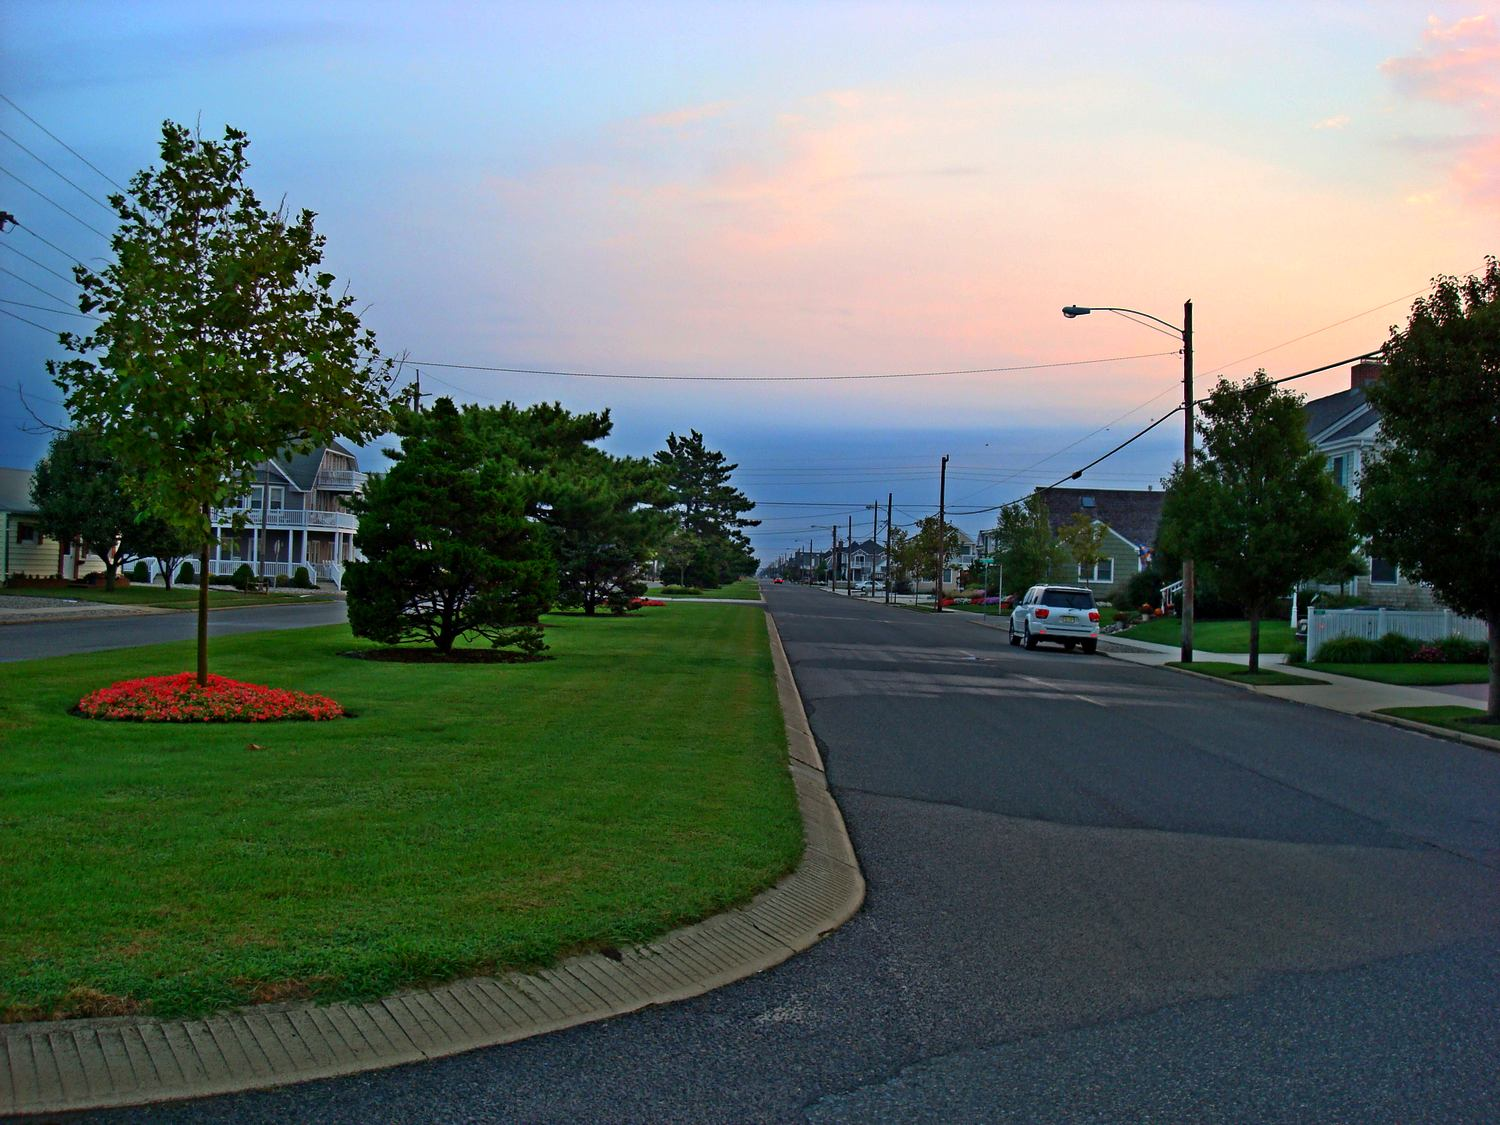 work and travel, usa, stone harbor, boulevards, sunset